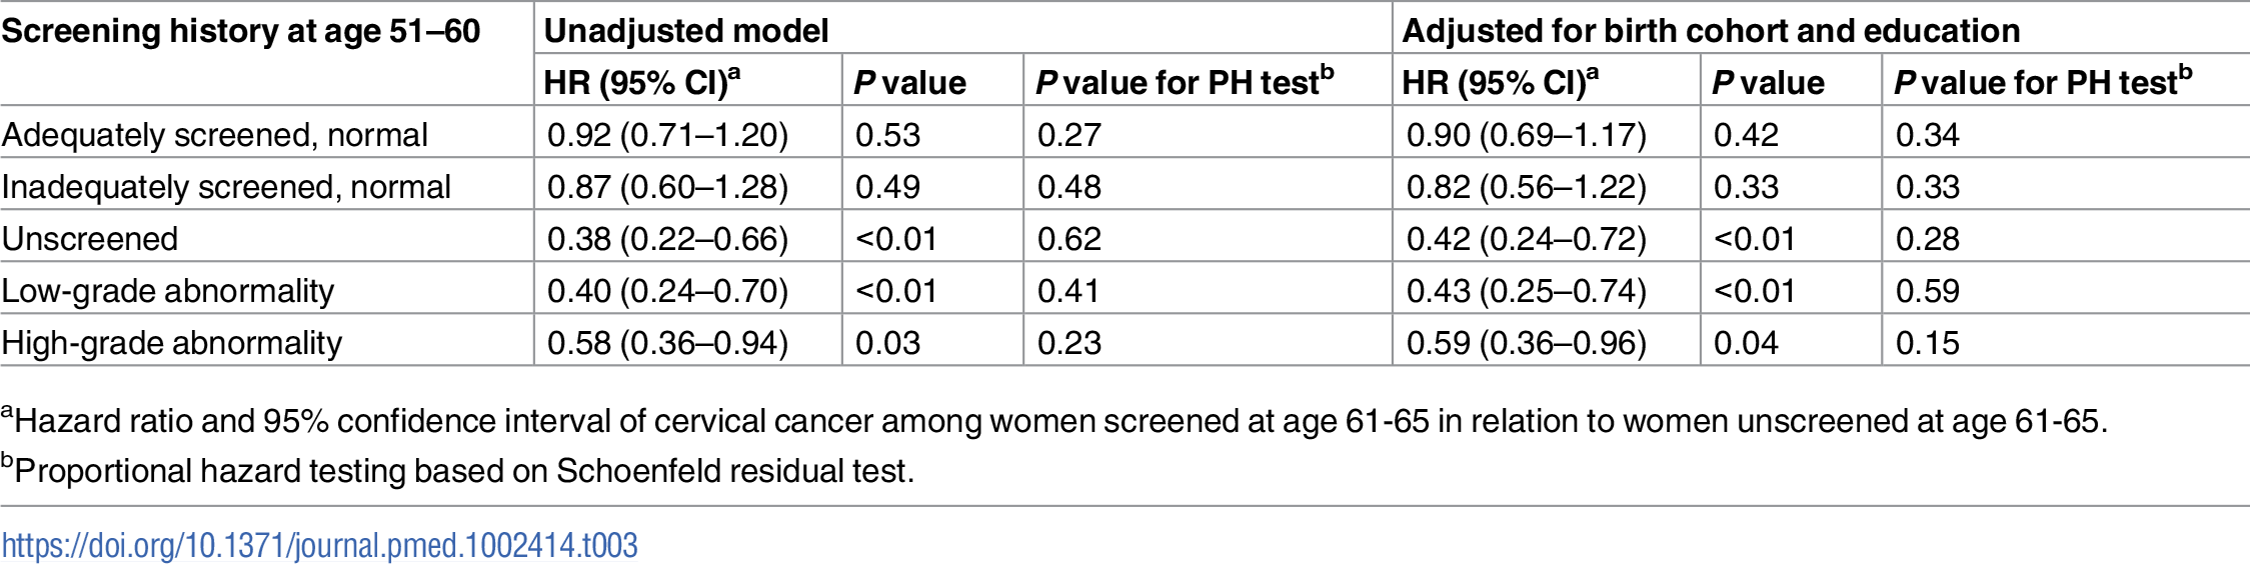 Cause-specific hazard ratio of cervical cancer from age 61 to age 80 comparing women screened and unscreened at age 61–65, by screening history at age 51–60, based on Cox regression model.